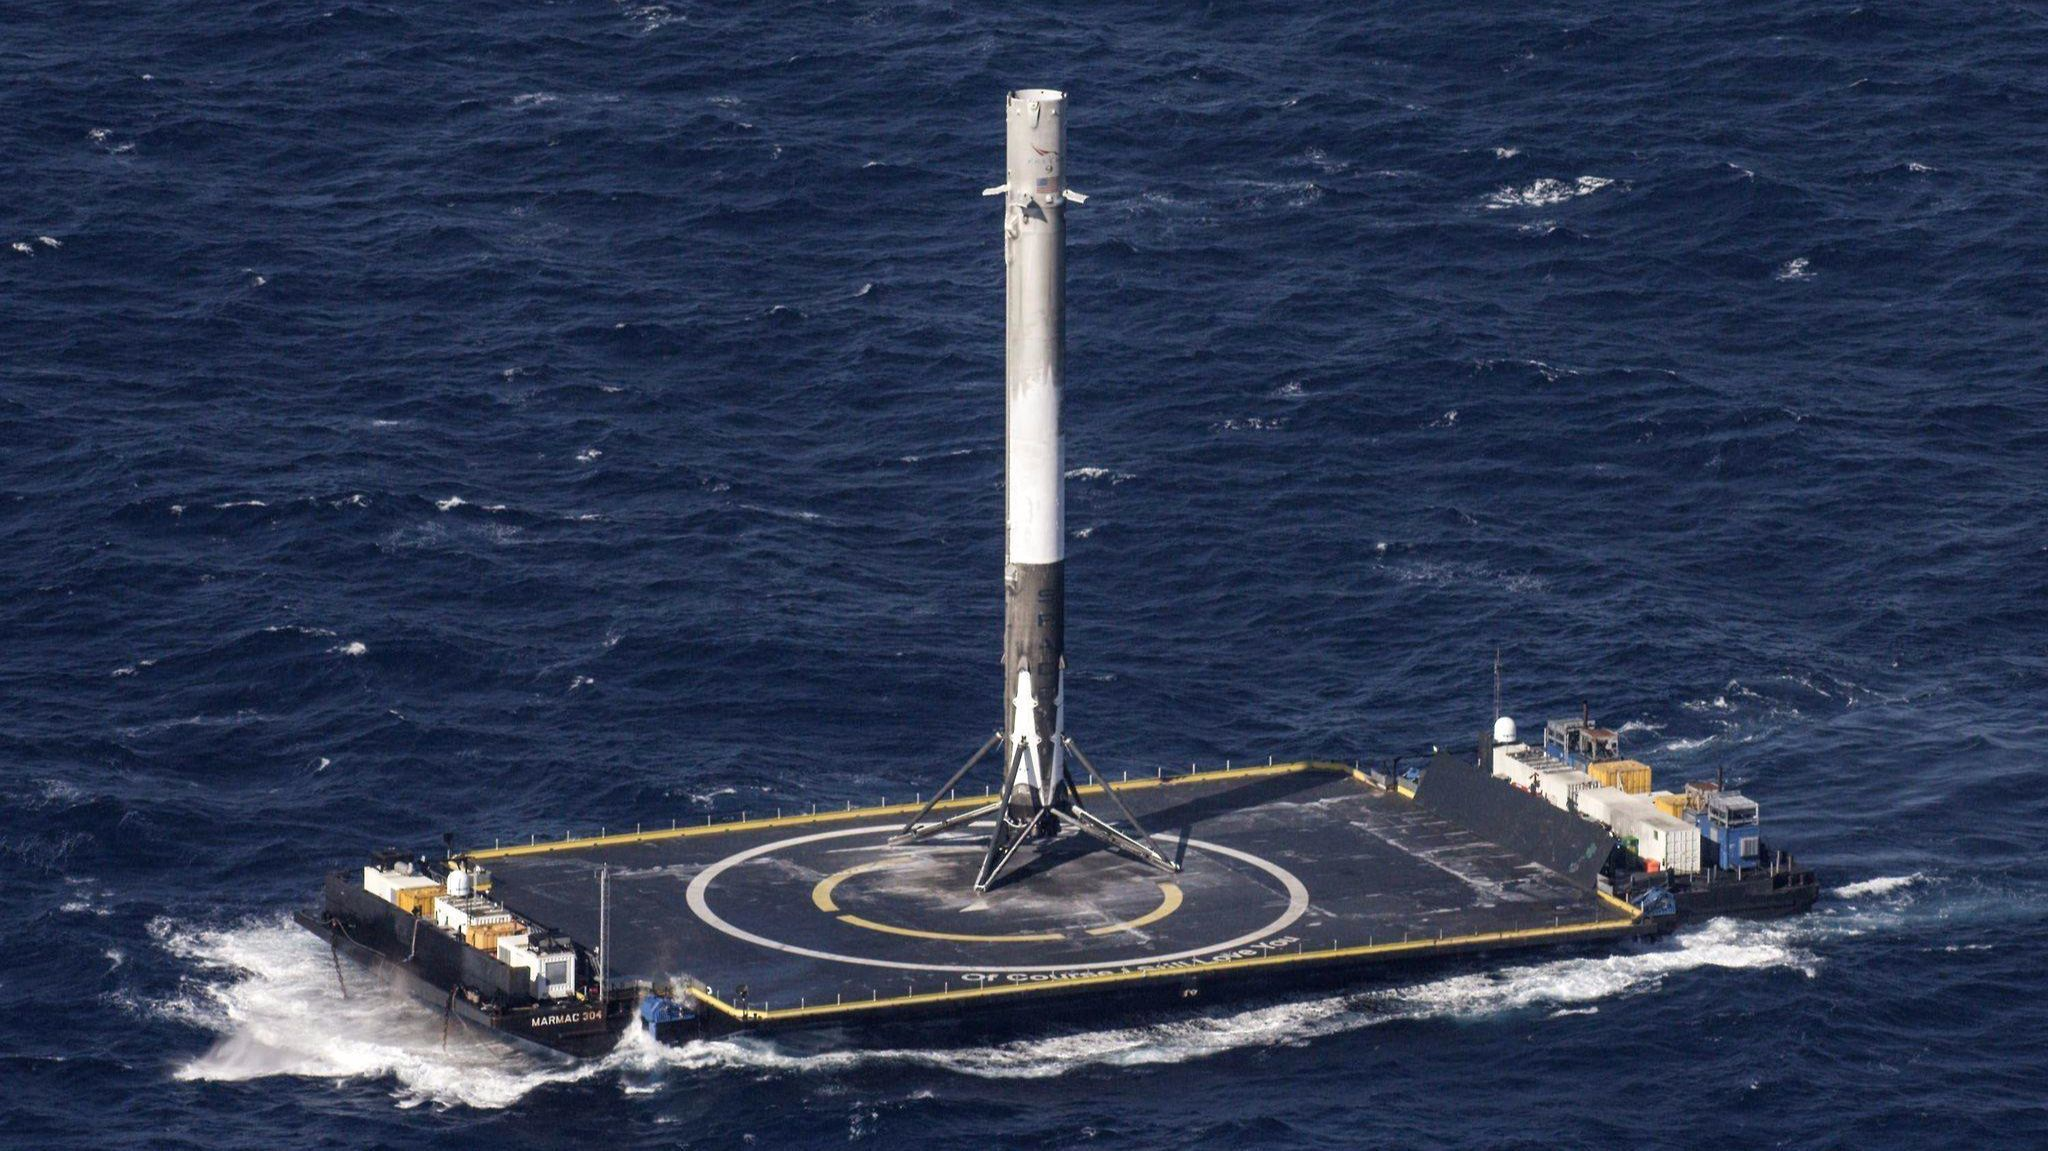 This first-stage booster of a SpaceX Falcon 9 rocket landed on a platform at sea in the Atlantic Ocean on April 9, 2016.